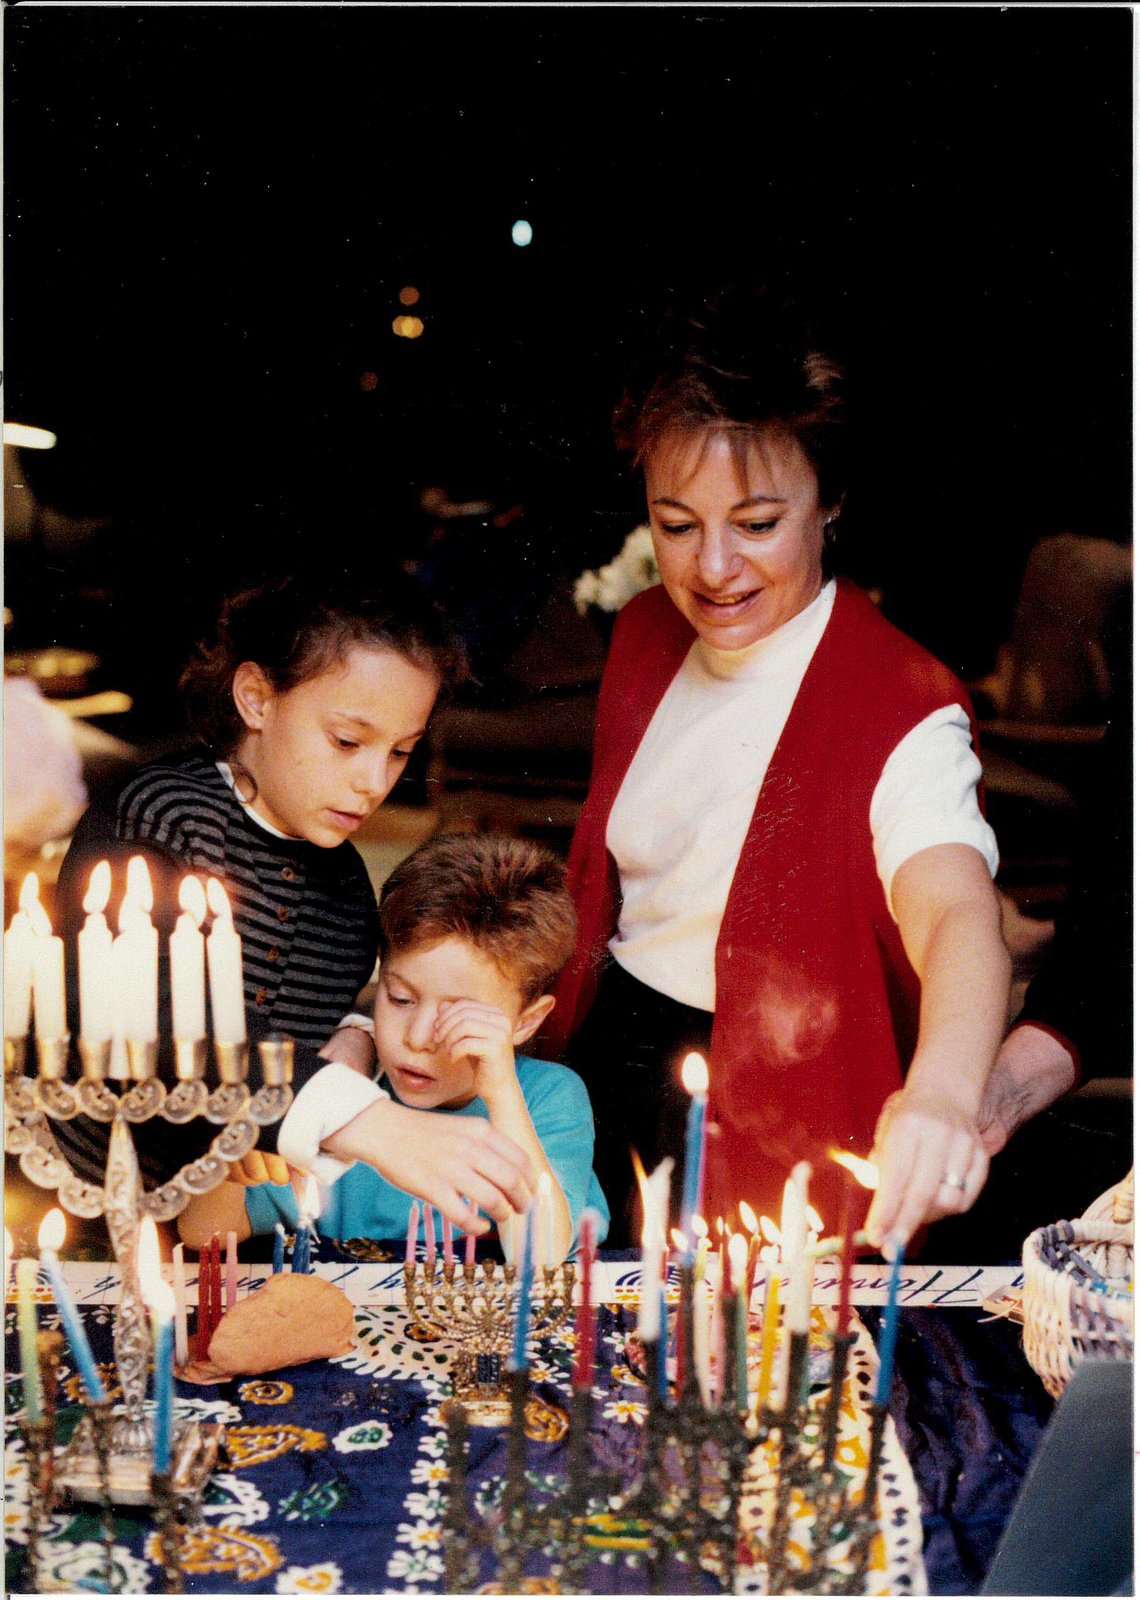 Michele and two of her three children, Mimi and Jack [Leslie not pictured], during Chanukah.